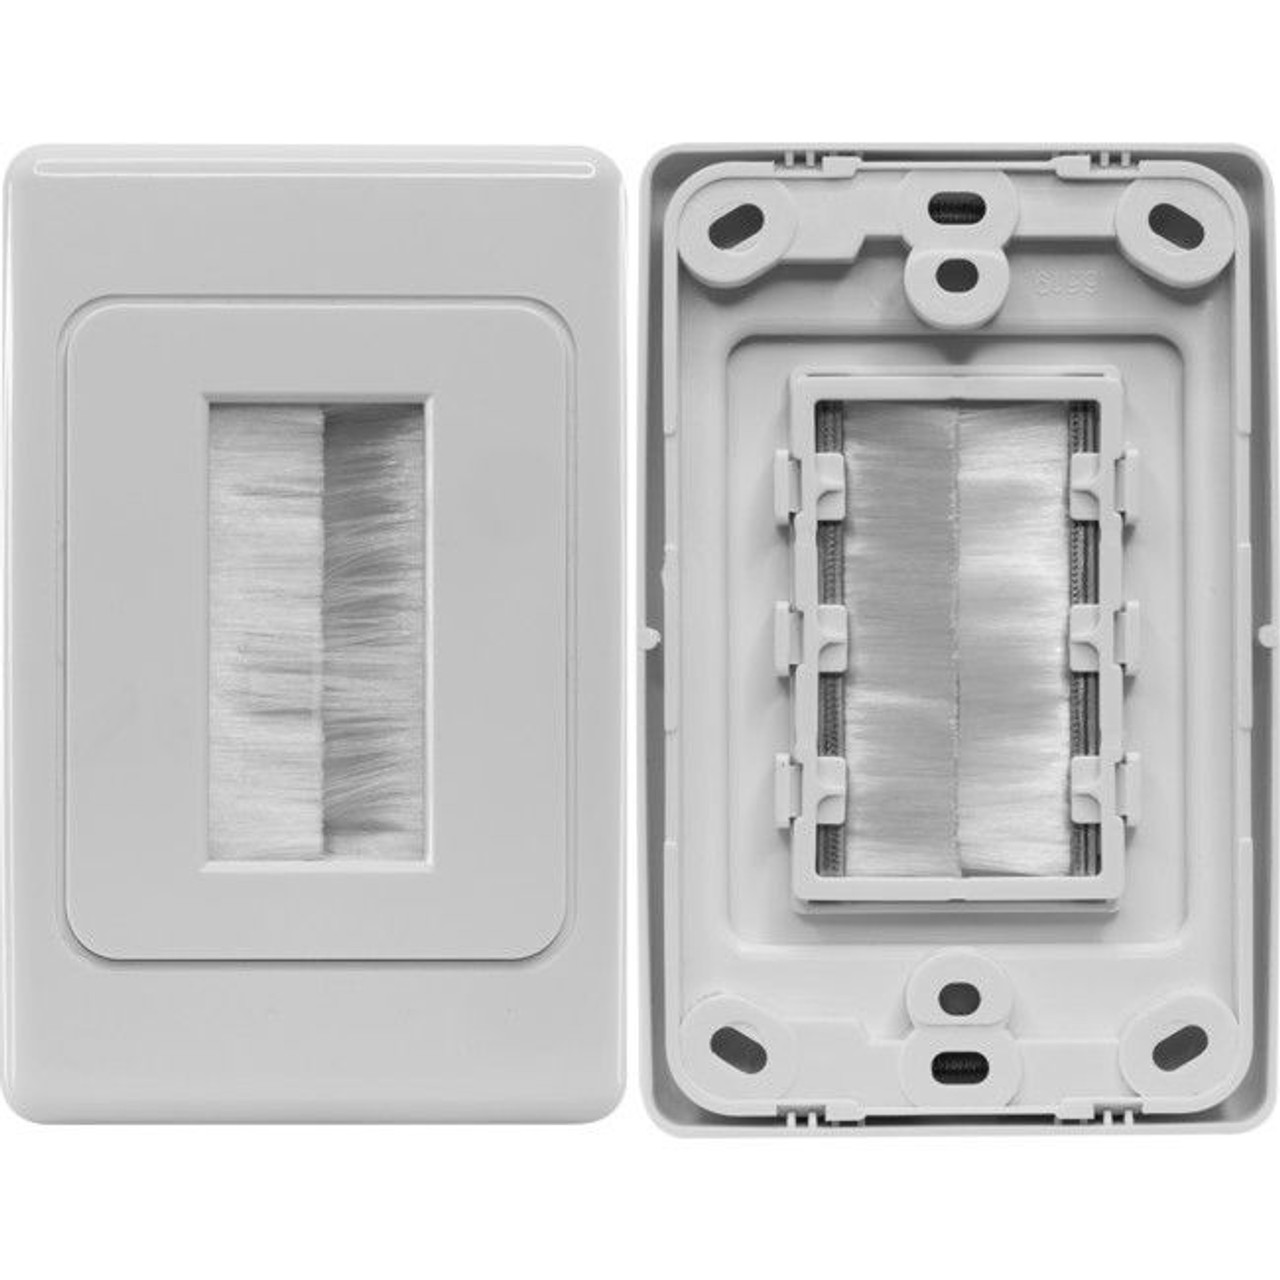 Pro2 ECO1272 Brush Wall Plate - White Plastic Eco Version